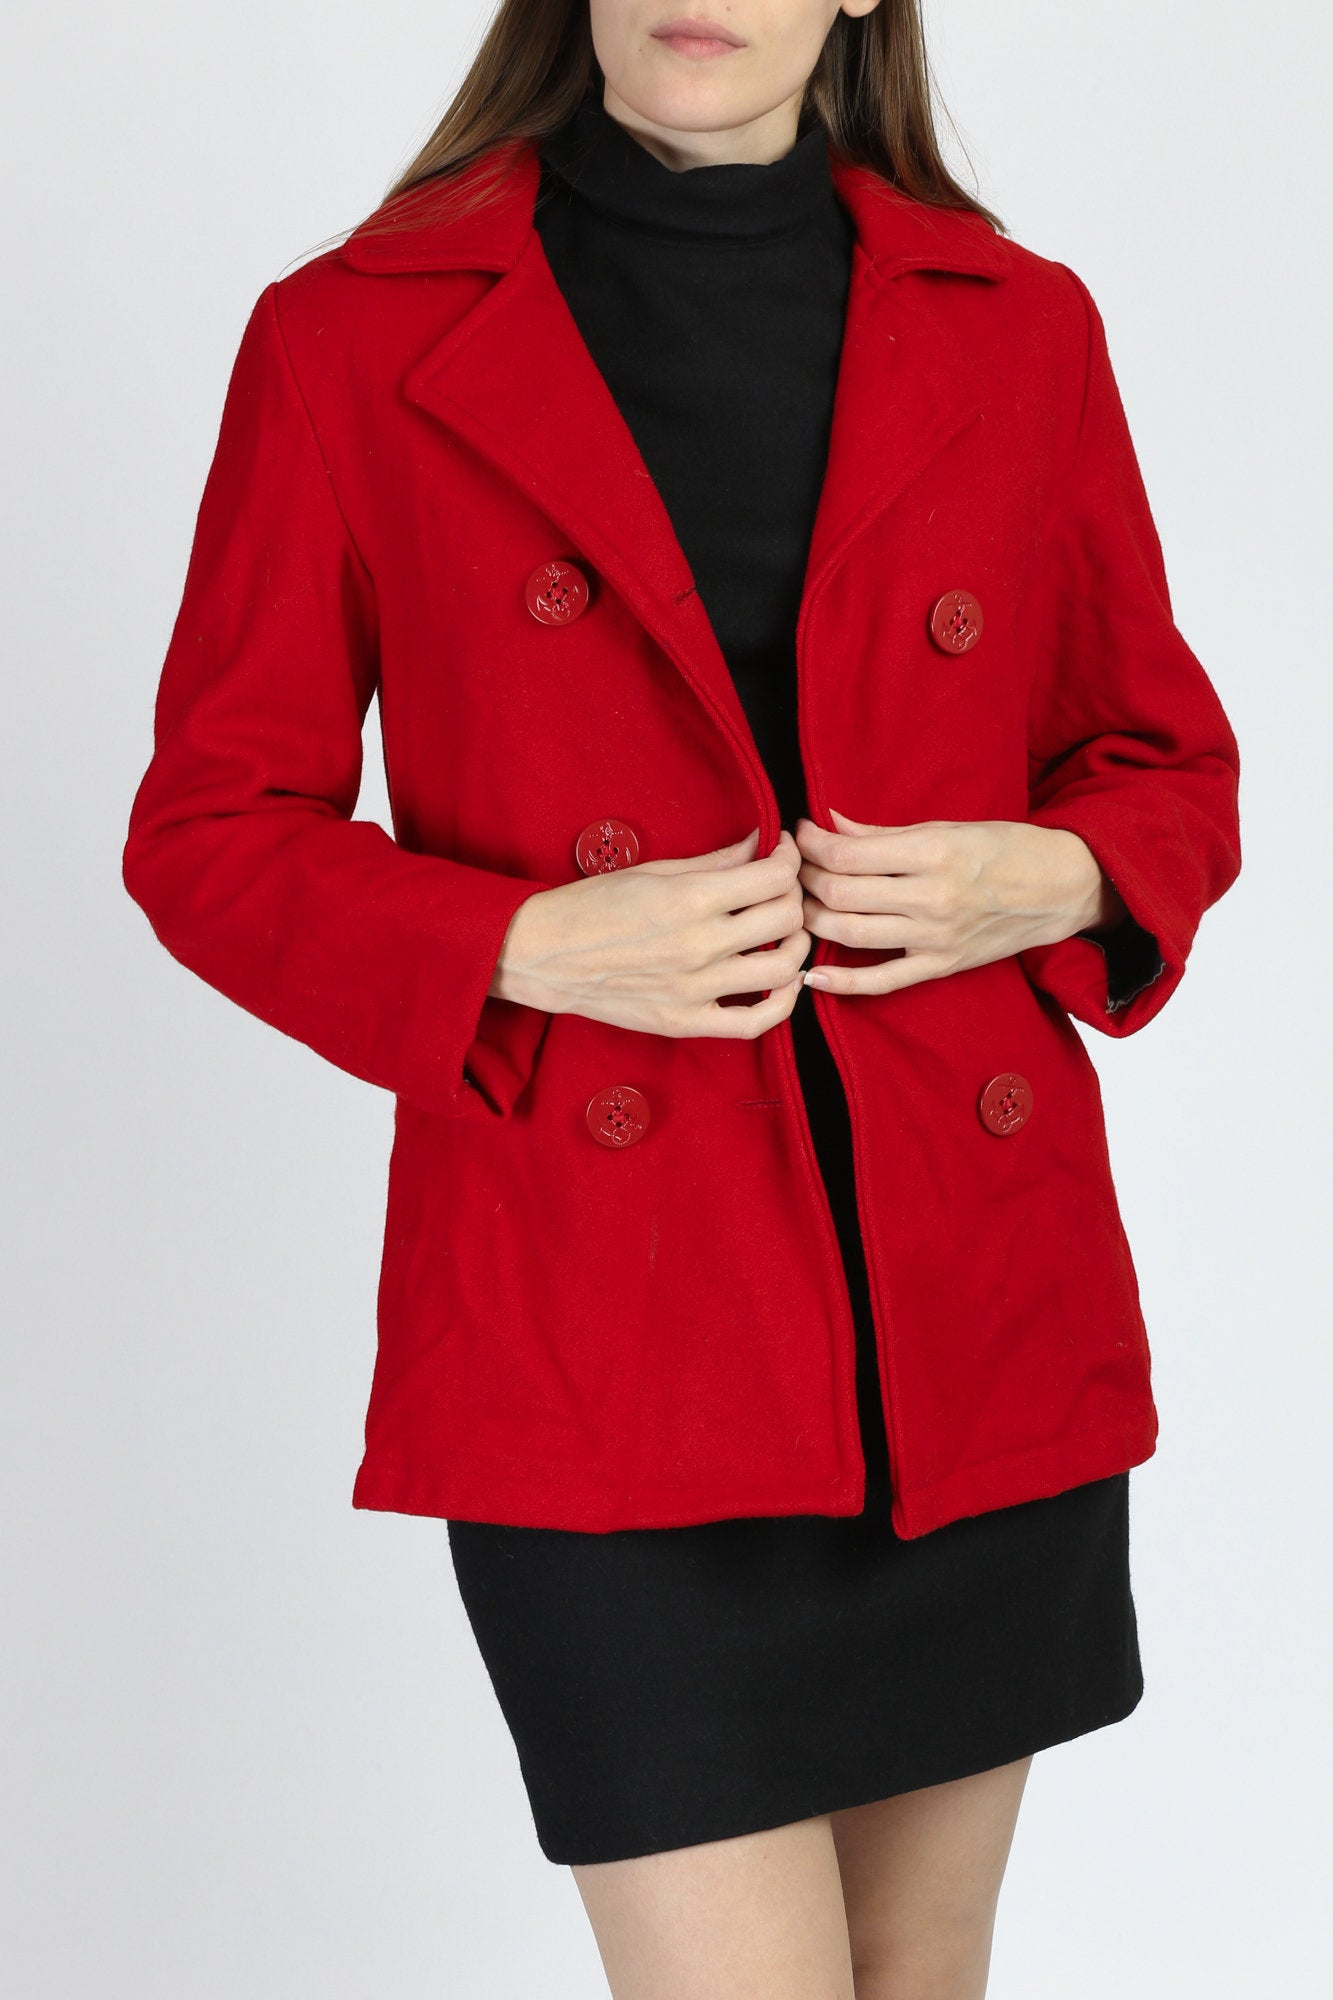 60s Red Mod Double Breasted Pea Coat - Small